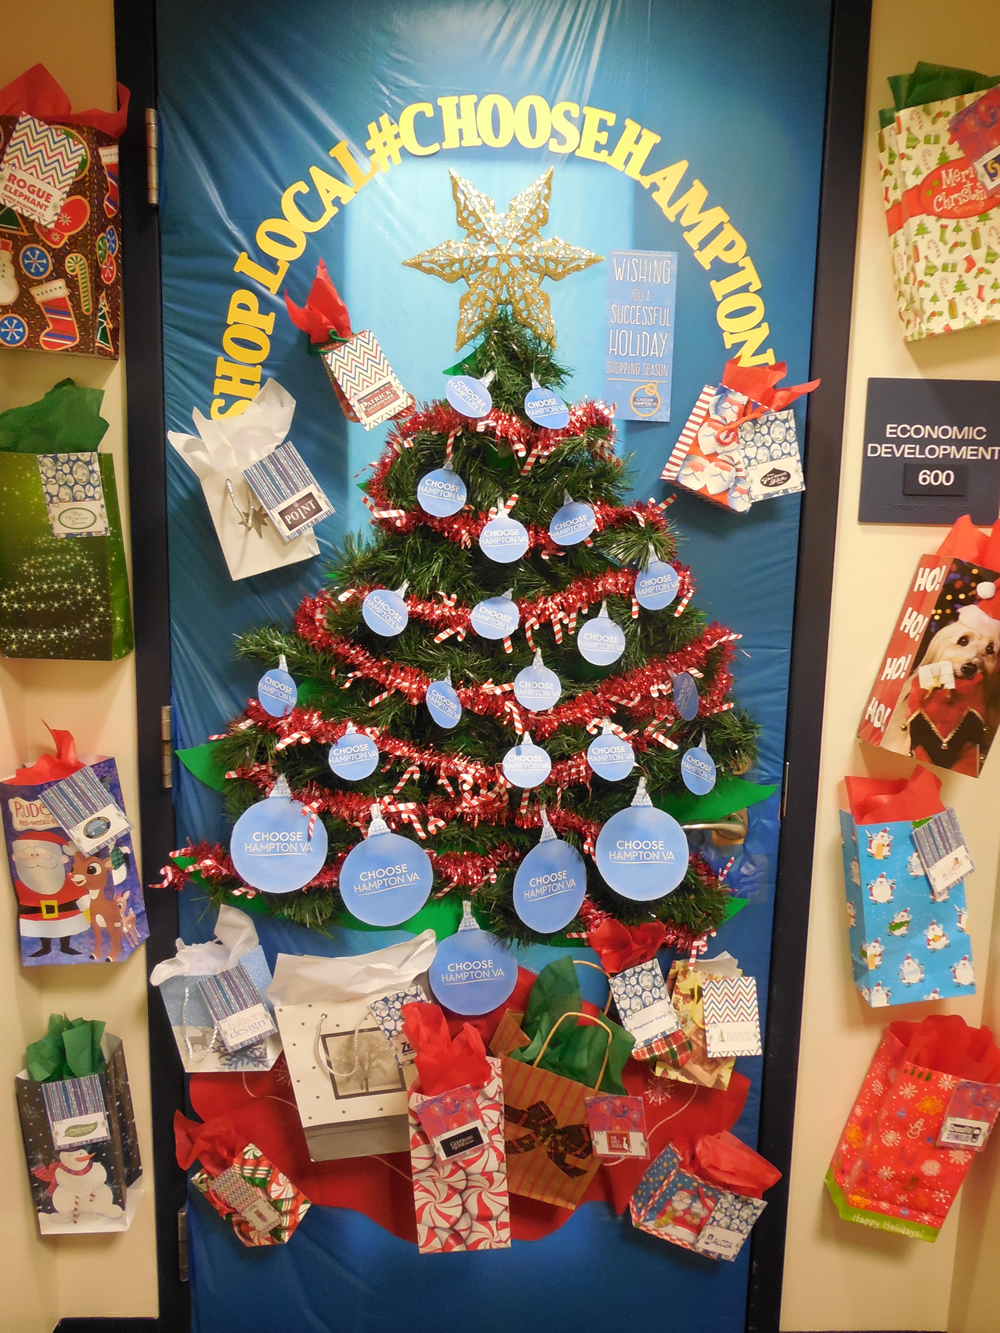 Honorable Mention - Economic Development Holiday Door Submission